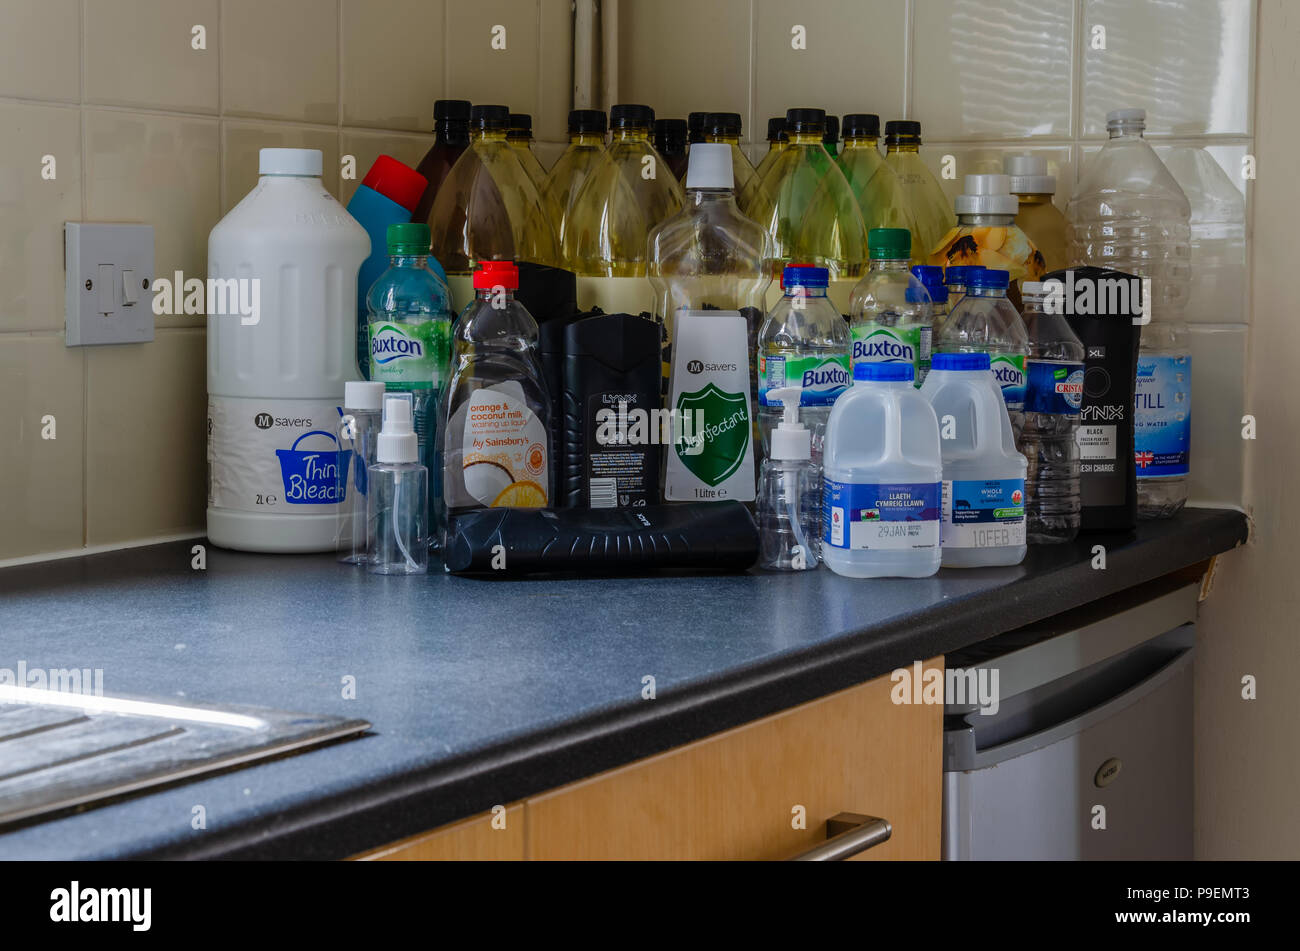 Plastic Domestic Uses Stock Photos & Plastic Domestic Uses Stock